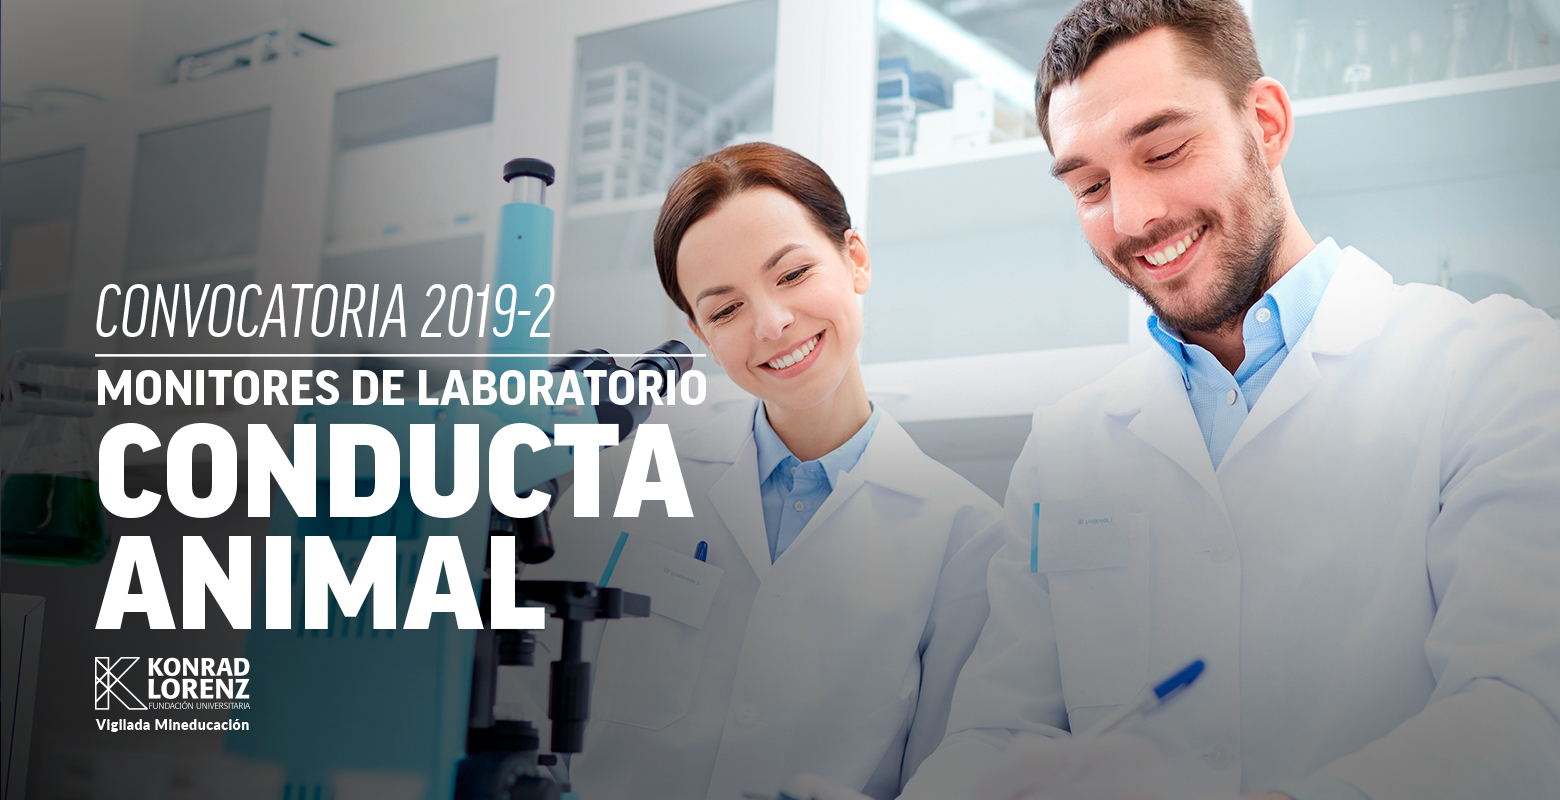 Convocatoria para monitores del Laboratorio de Conducta Animal 2019-2